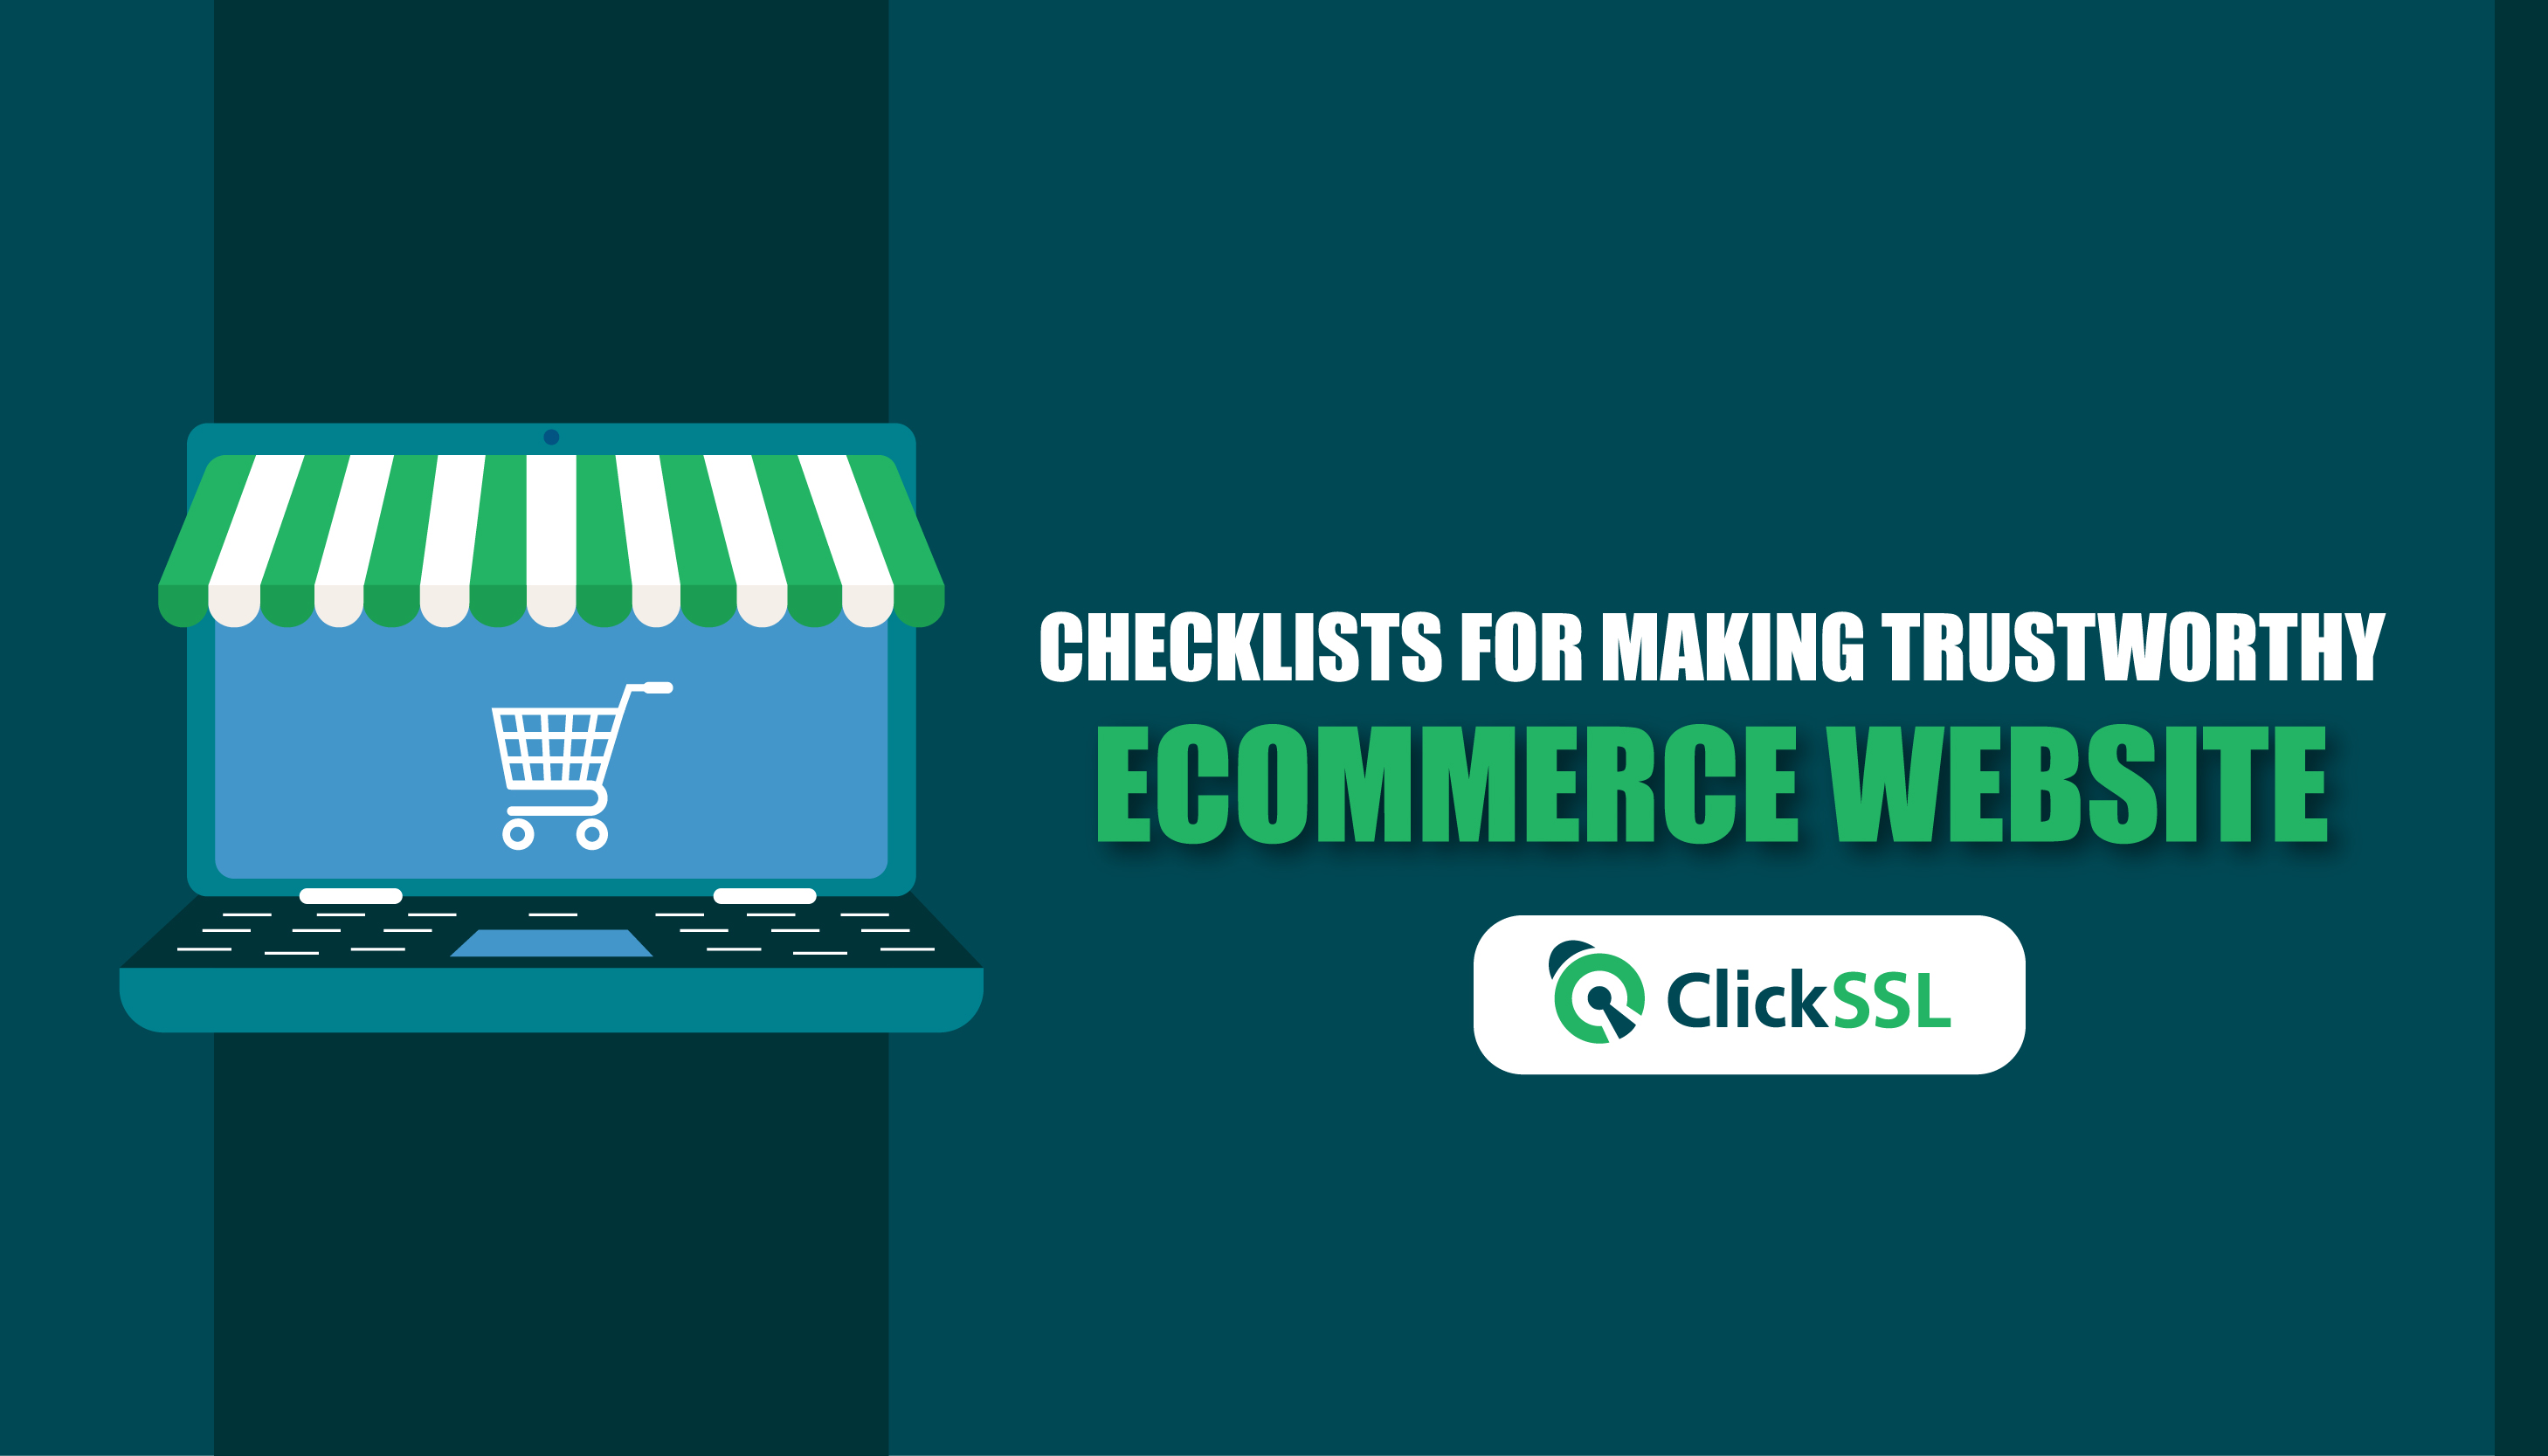 checklists for making trustworthy ecommerce website